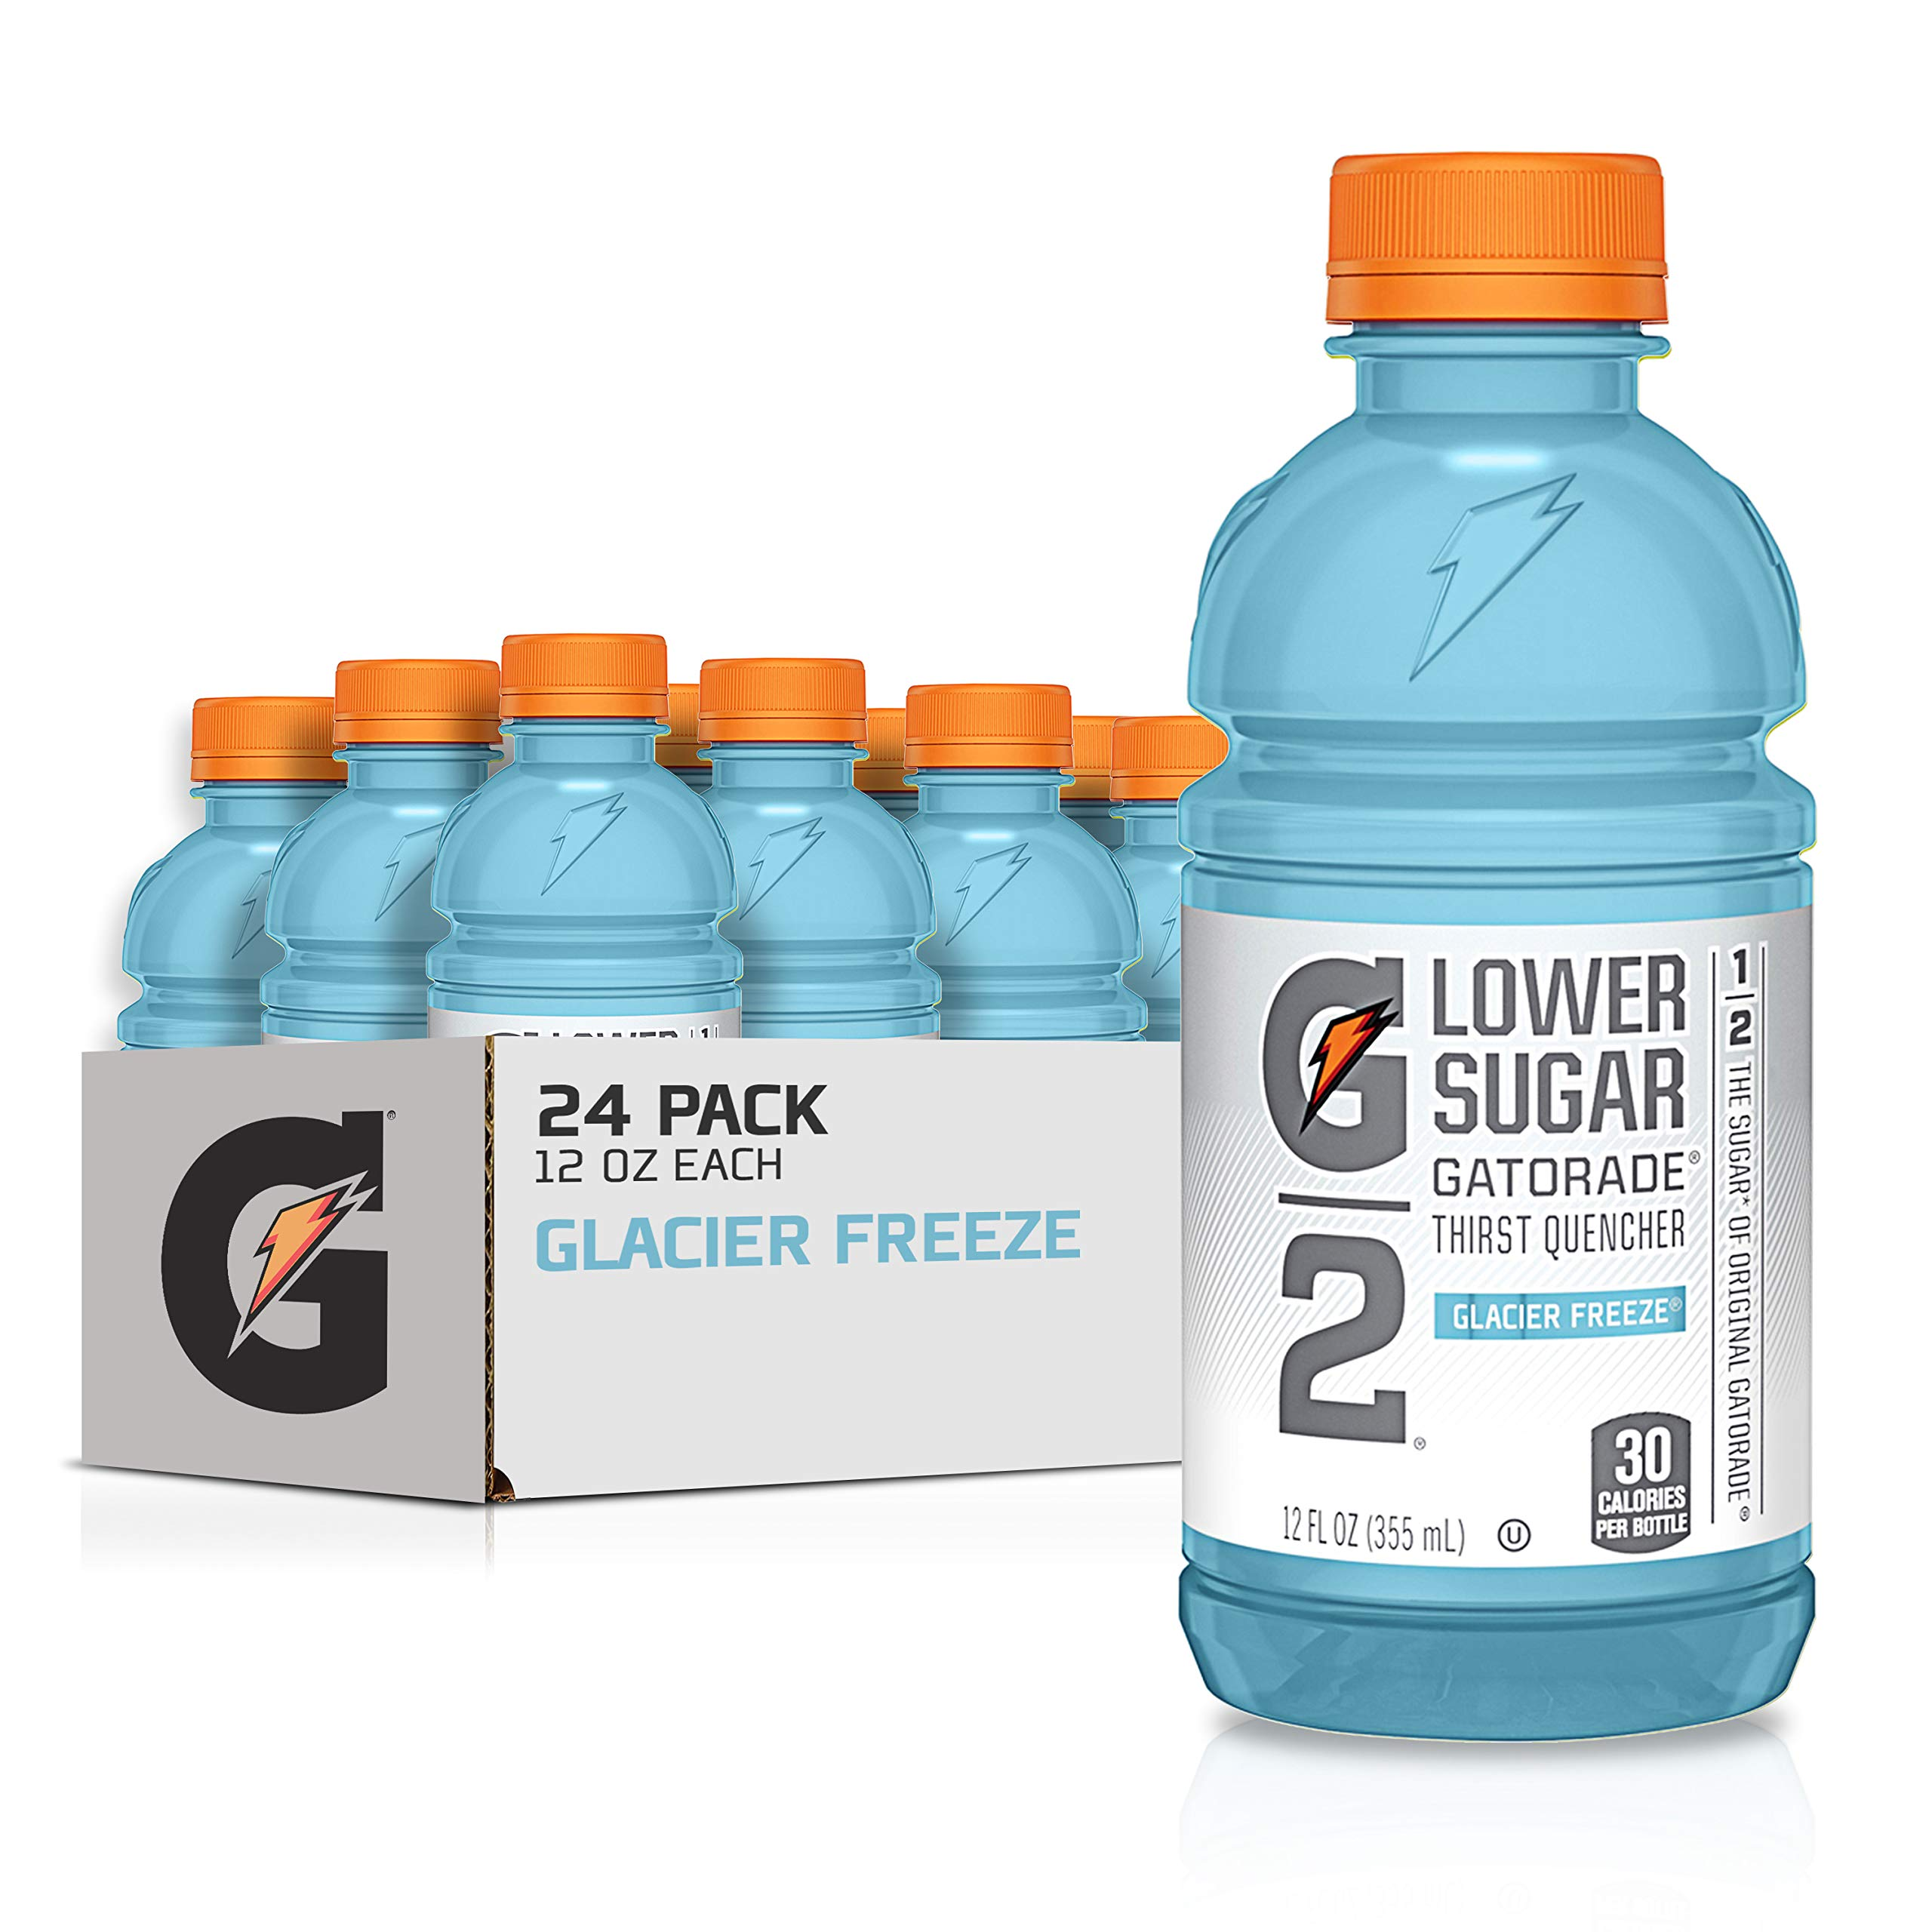 Gatorade G2 Thirst Quencher, Lower Sugar, Glacier Freeze, 12 Ounce Bottles (Pack of 24)